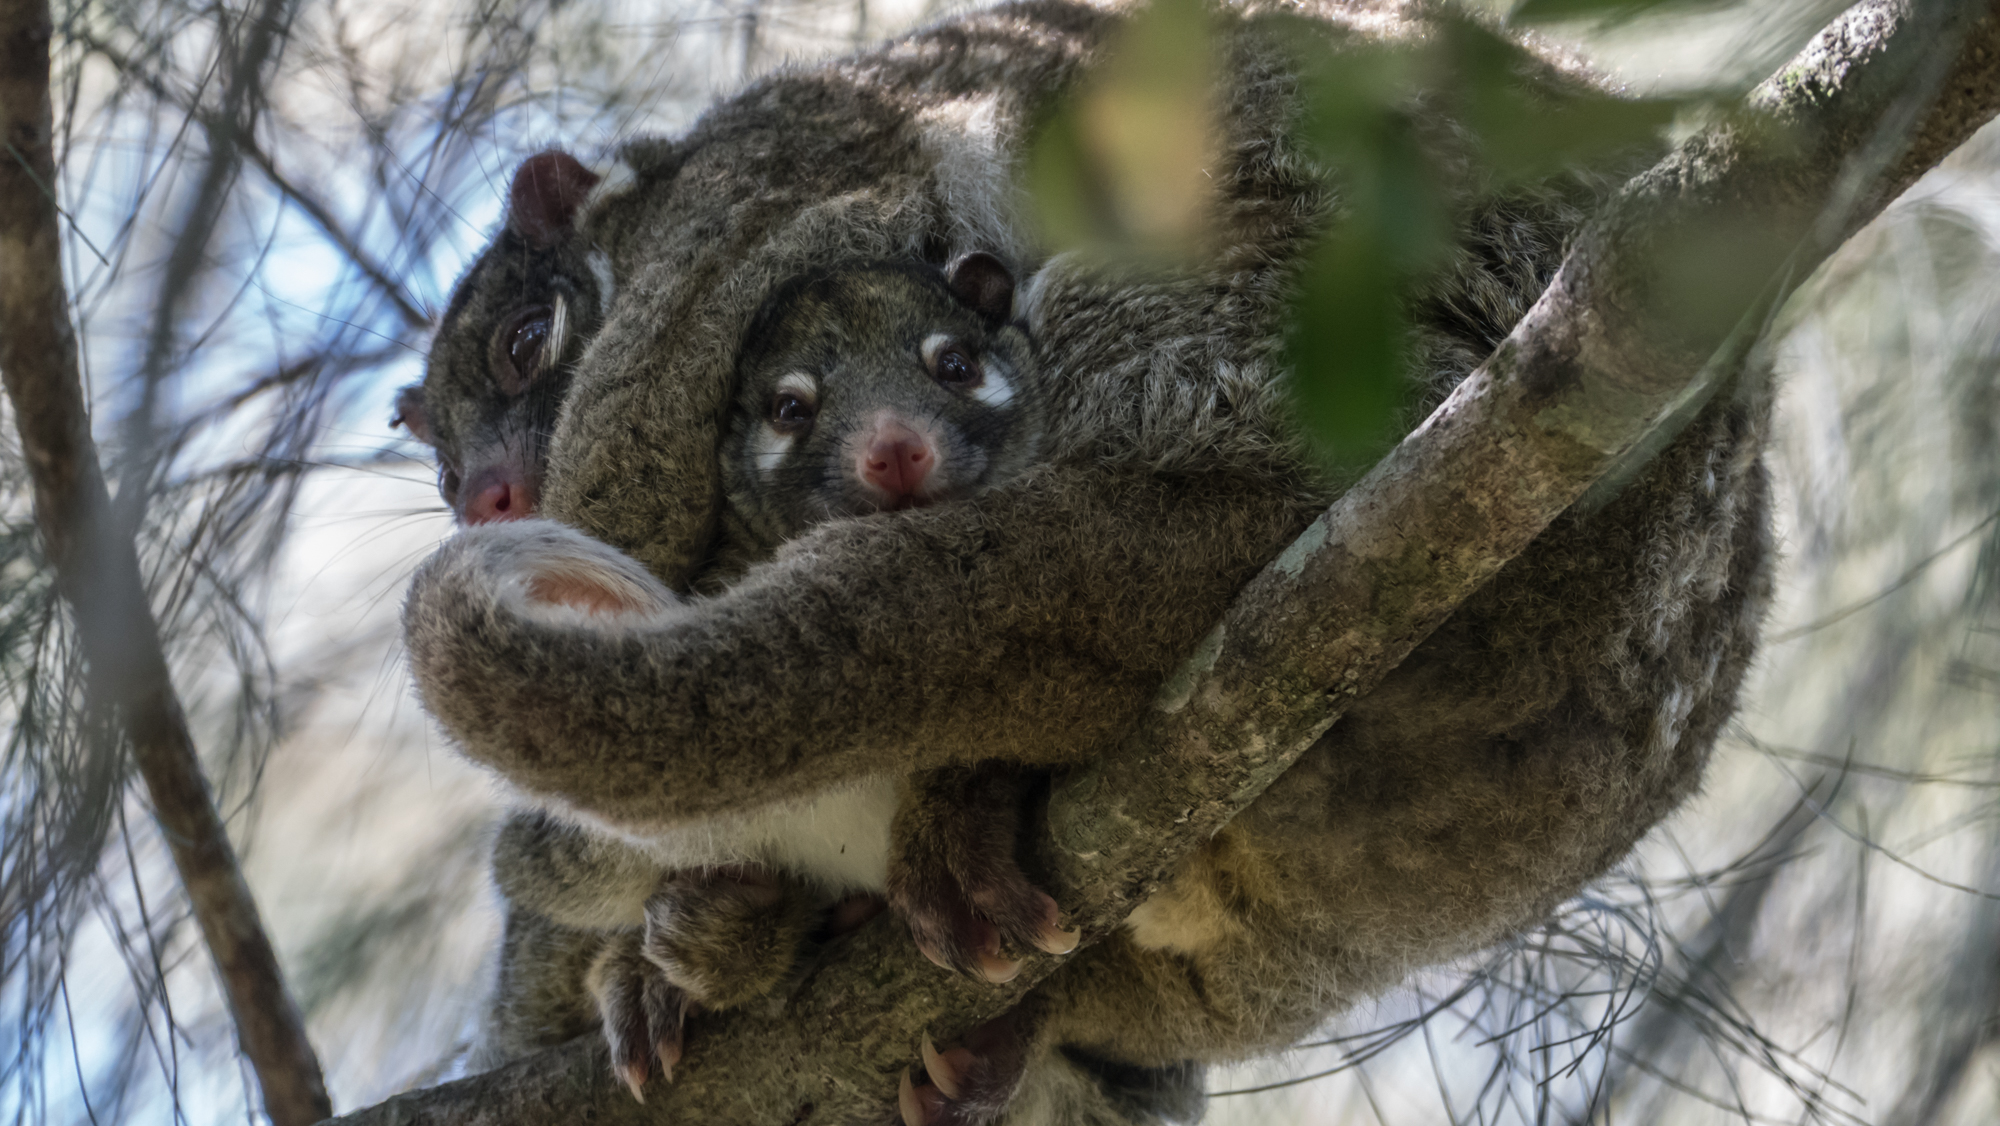 Marsupial possum with young